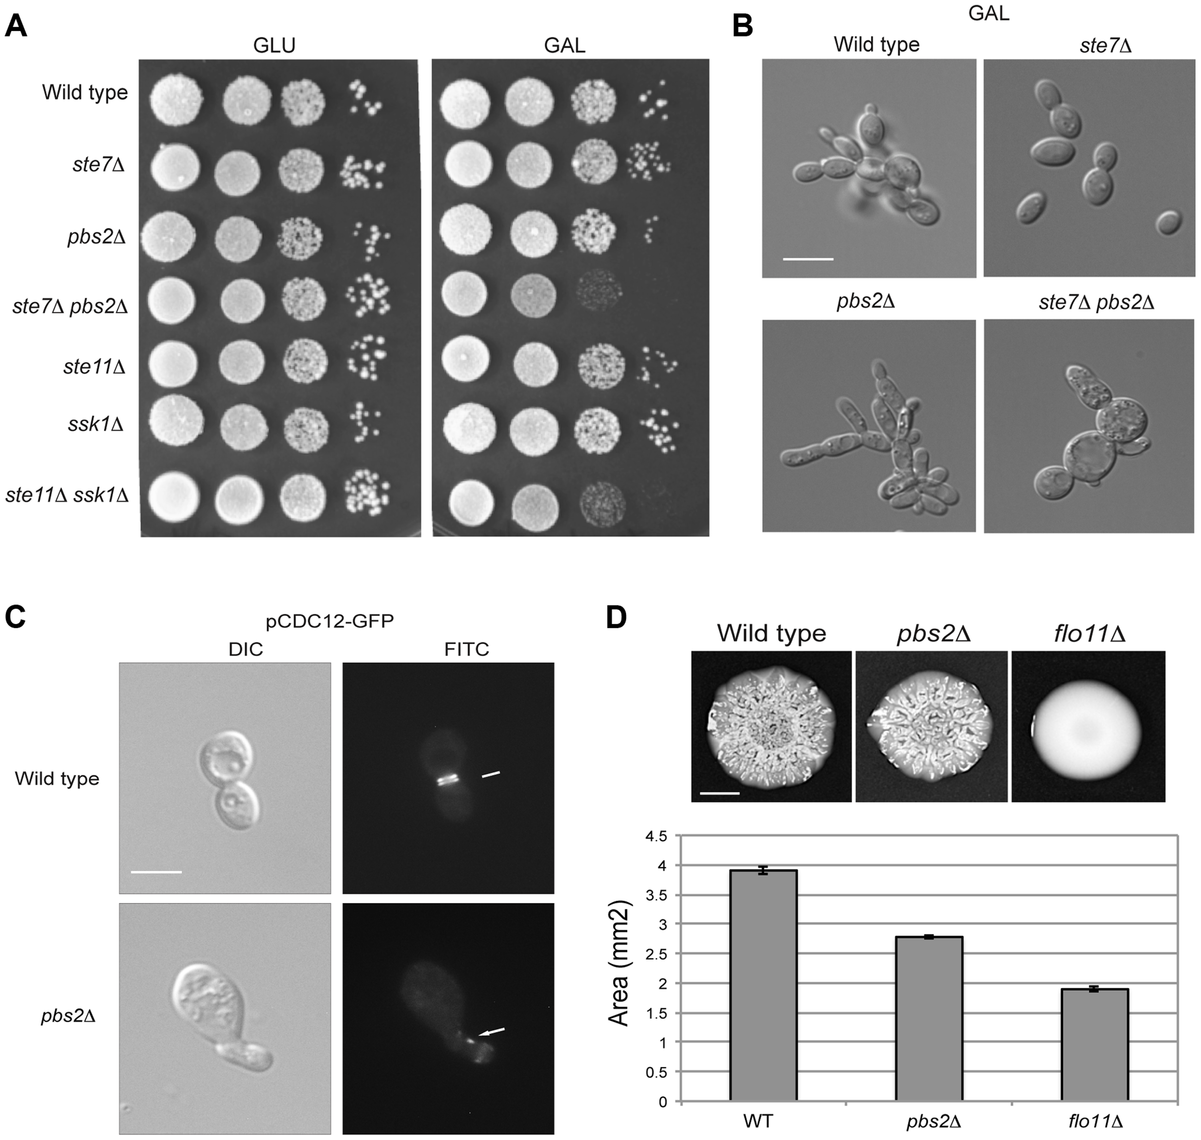 Role of the HOG and filamentous growth pathways in growth in galactose and effect of the inhibitory role of the HOG pathway on filamentous growth pathway outputs.